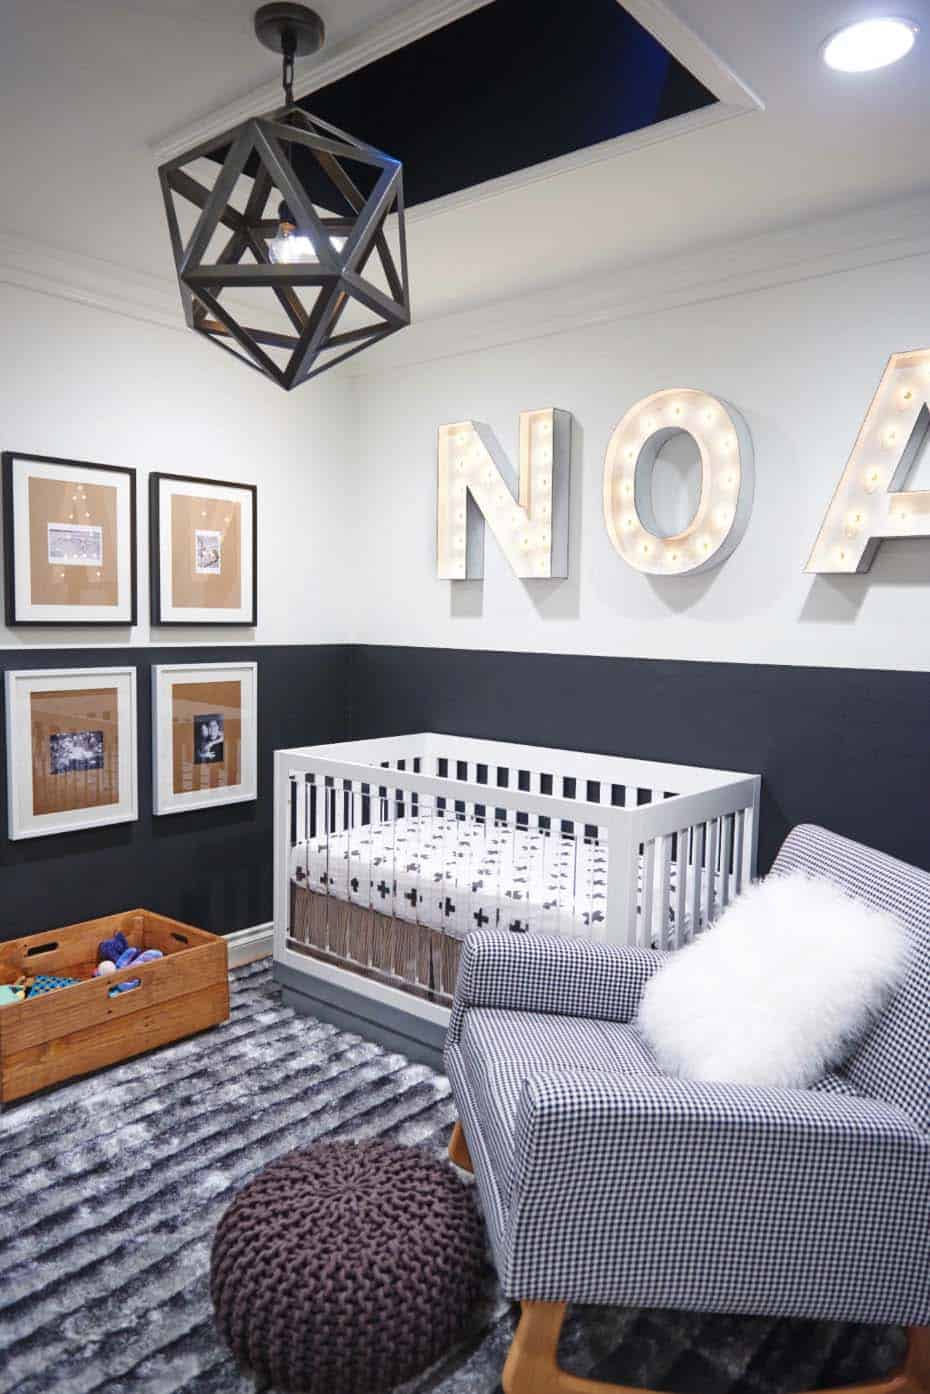 Stylish Nursery Decorating Ideas-05-1 Kindesign